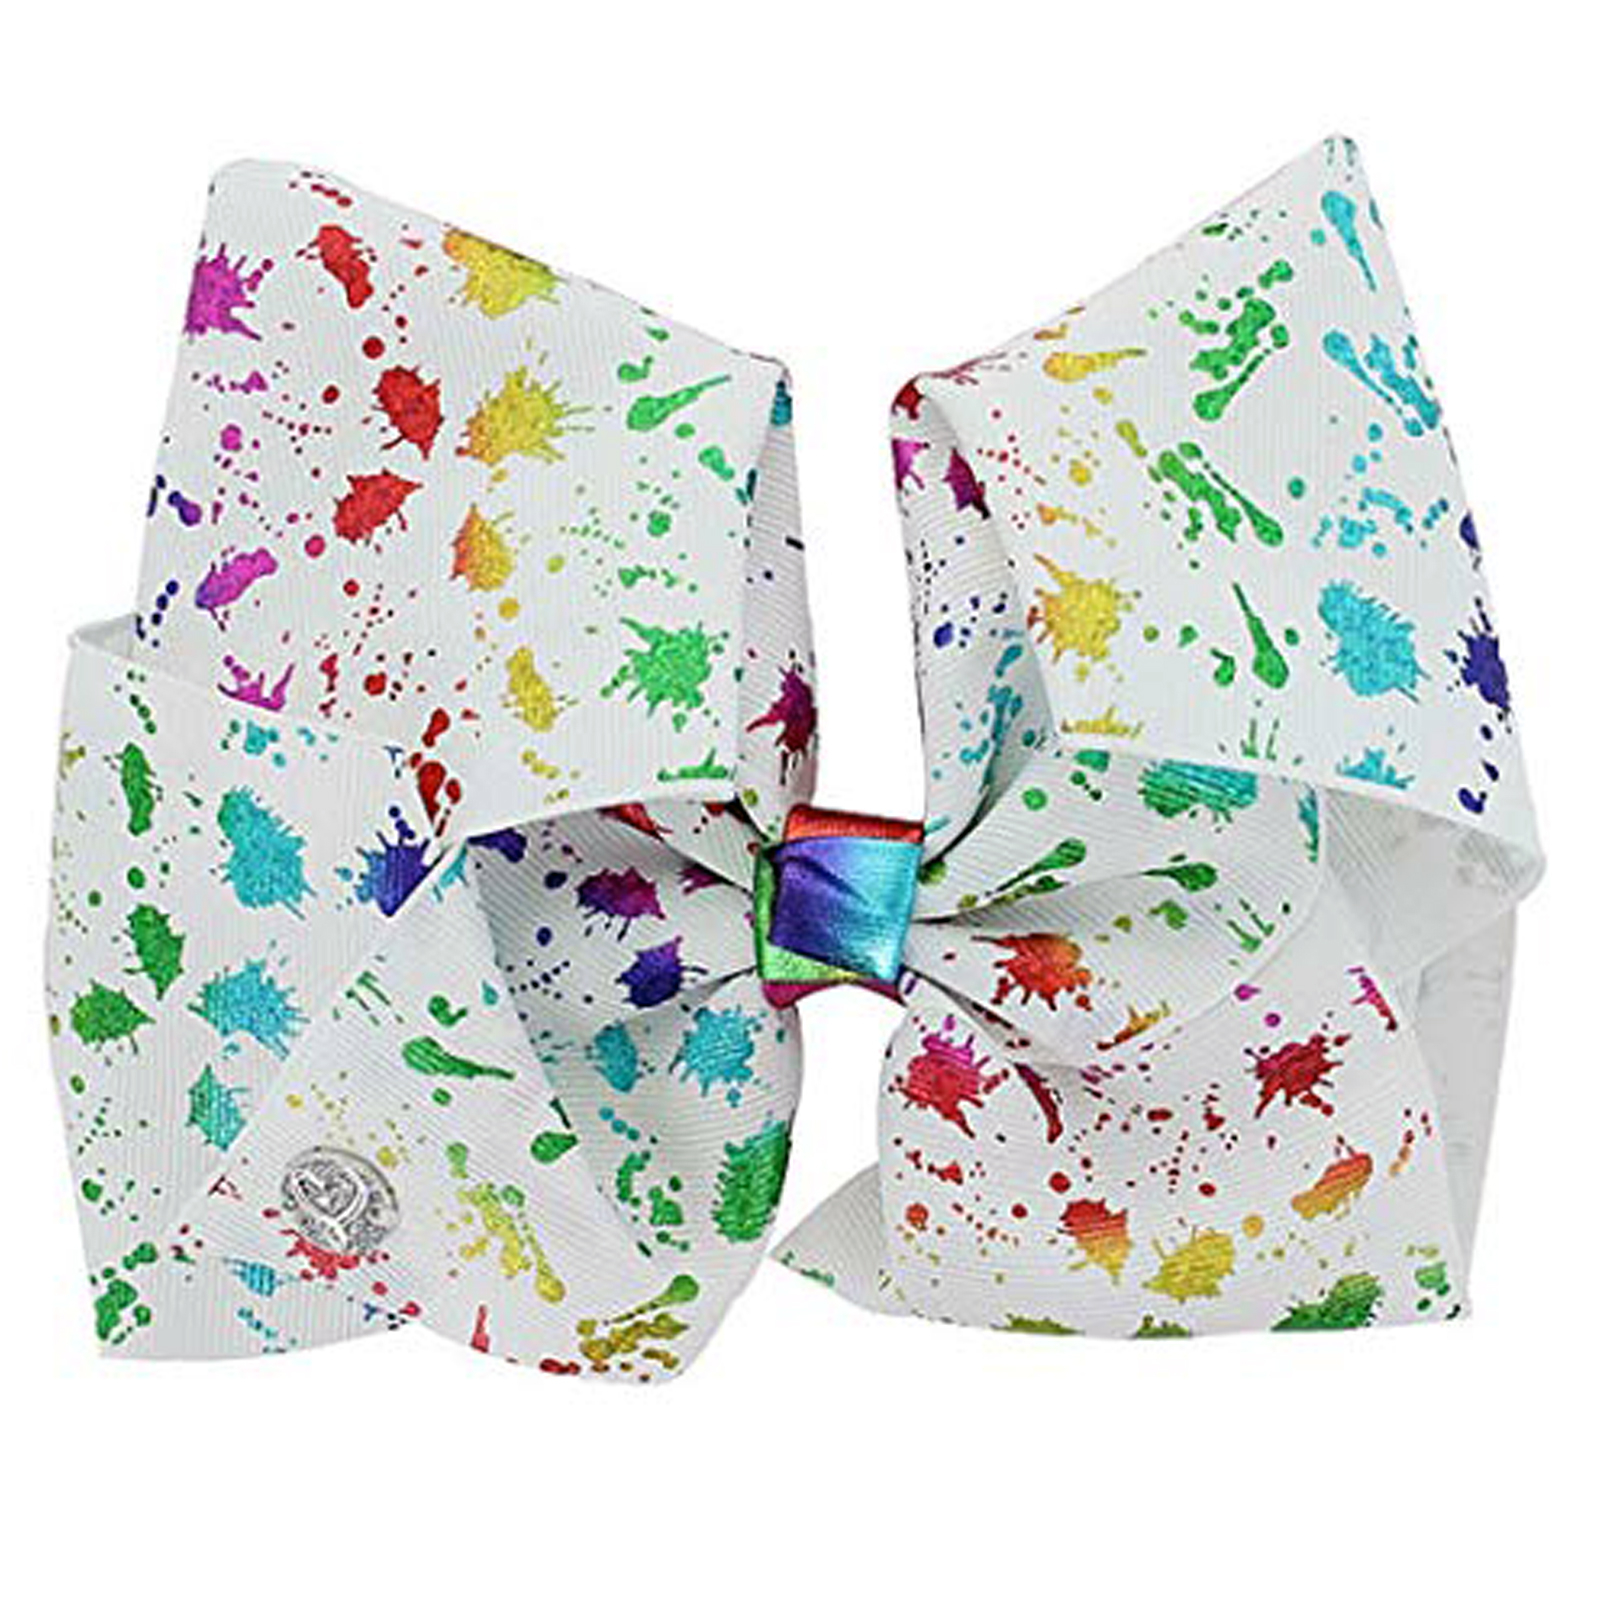 Nickelodeon JoJo Siwa Girls Large Hair Clip Bow Rainbow Paint Splatter Accessory